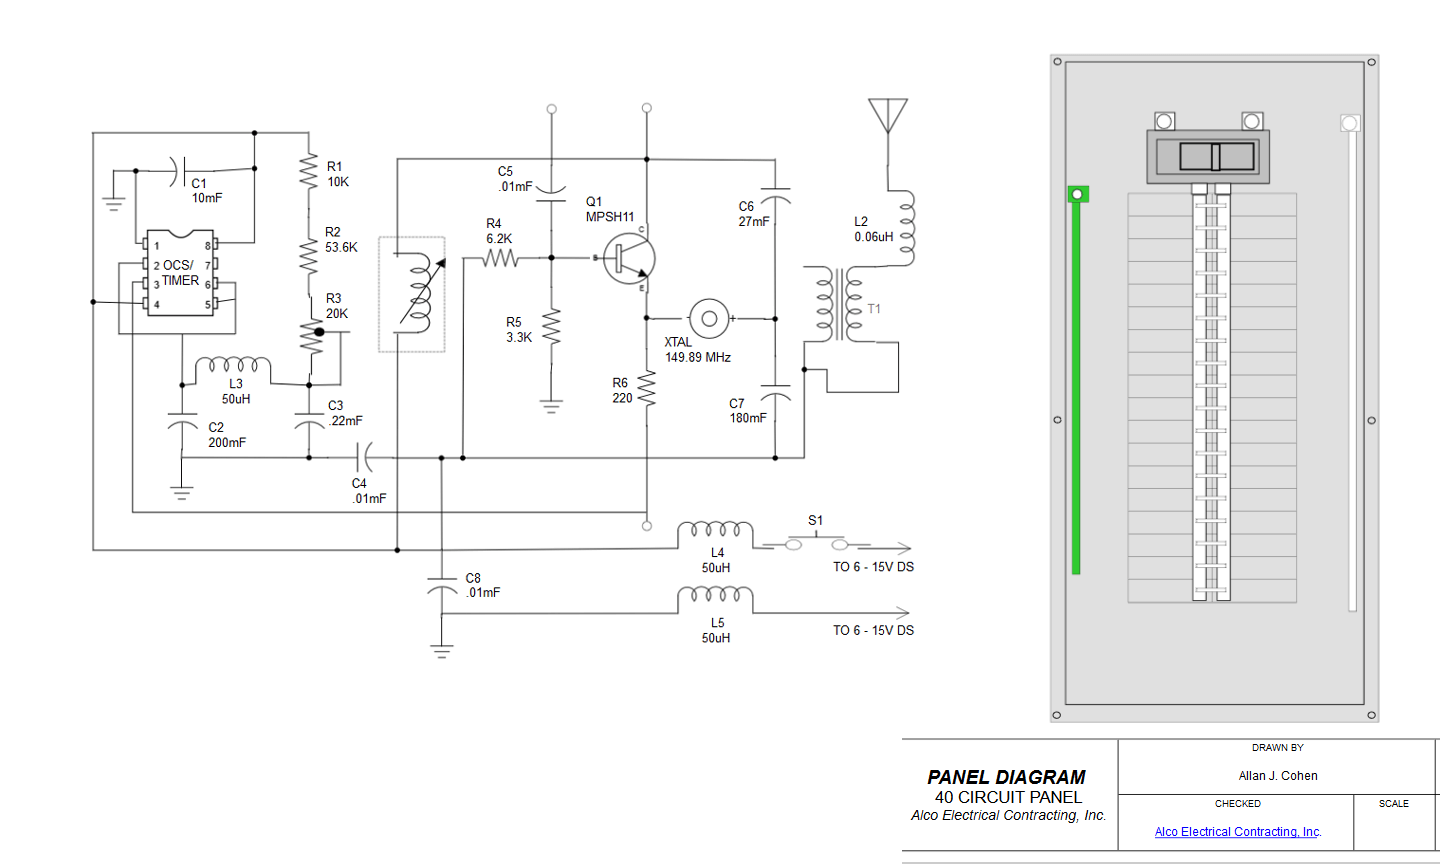 Electrical Control Schematic Software - Wiring Diagram Services •